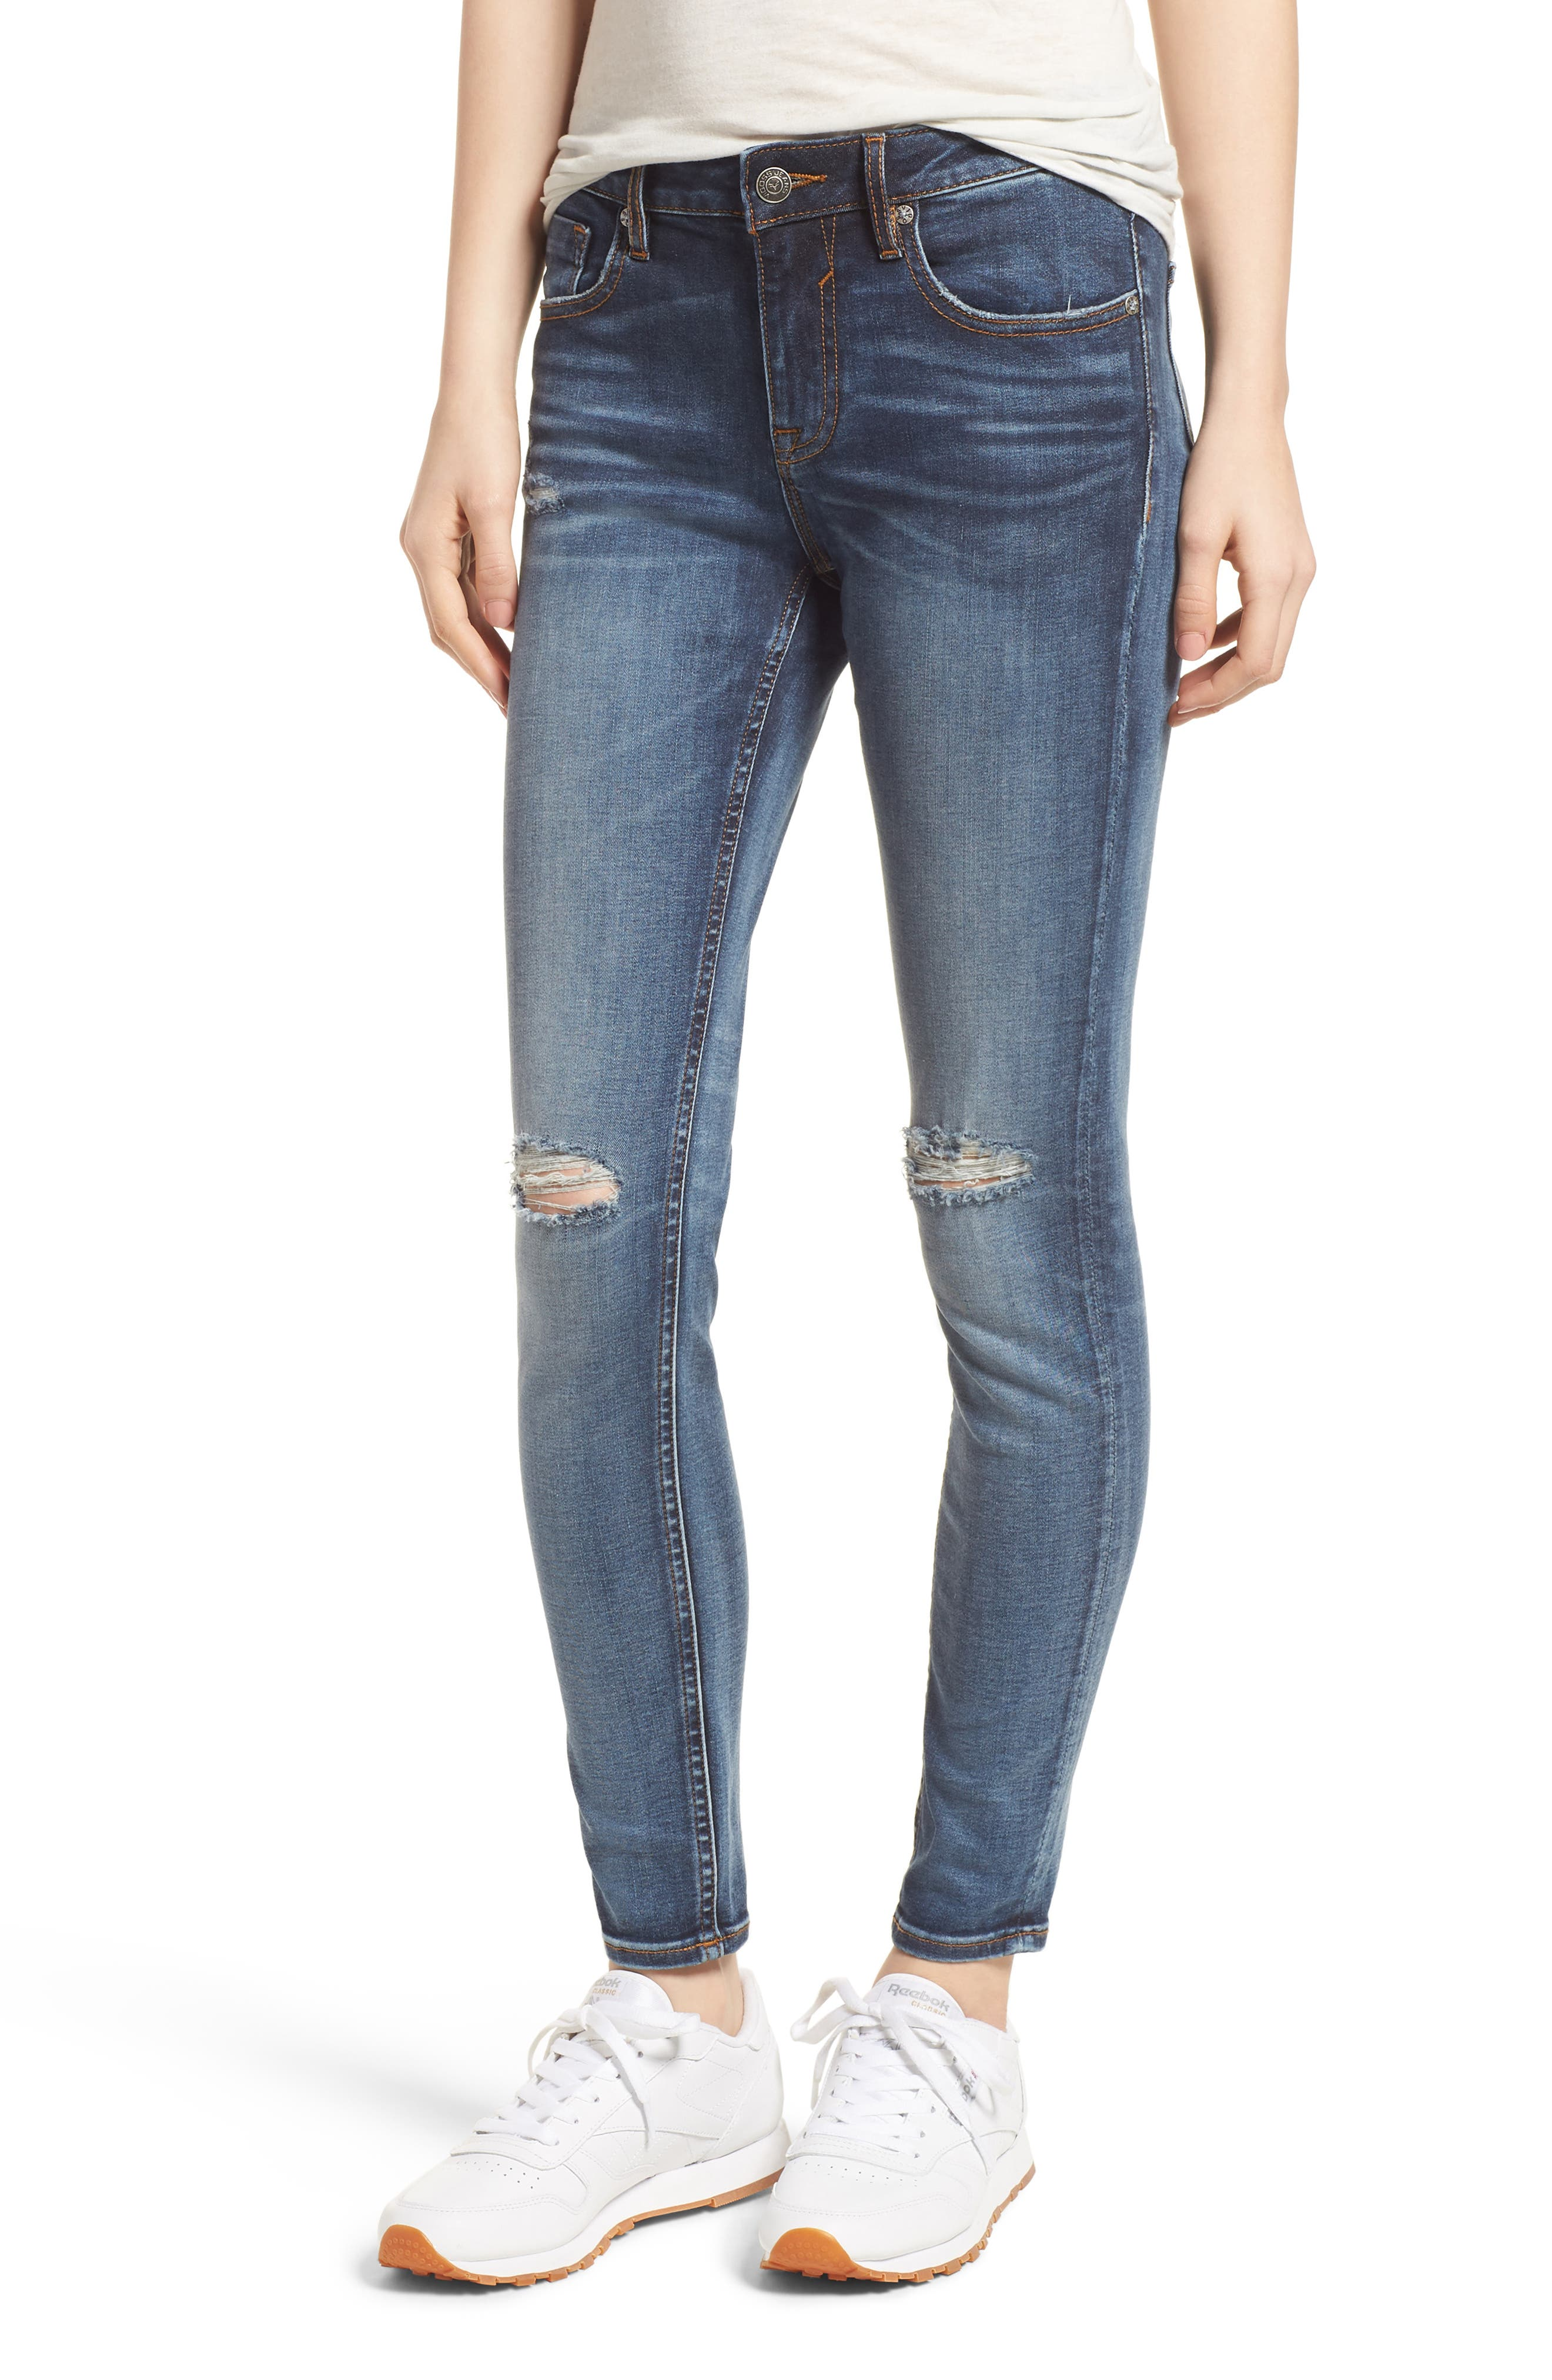 Jagger Ripped Skinny Jeans,                         Main,                         color,